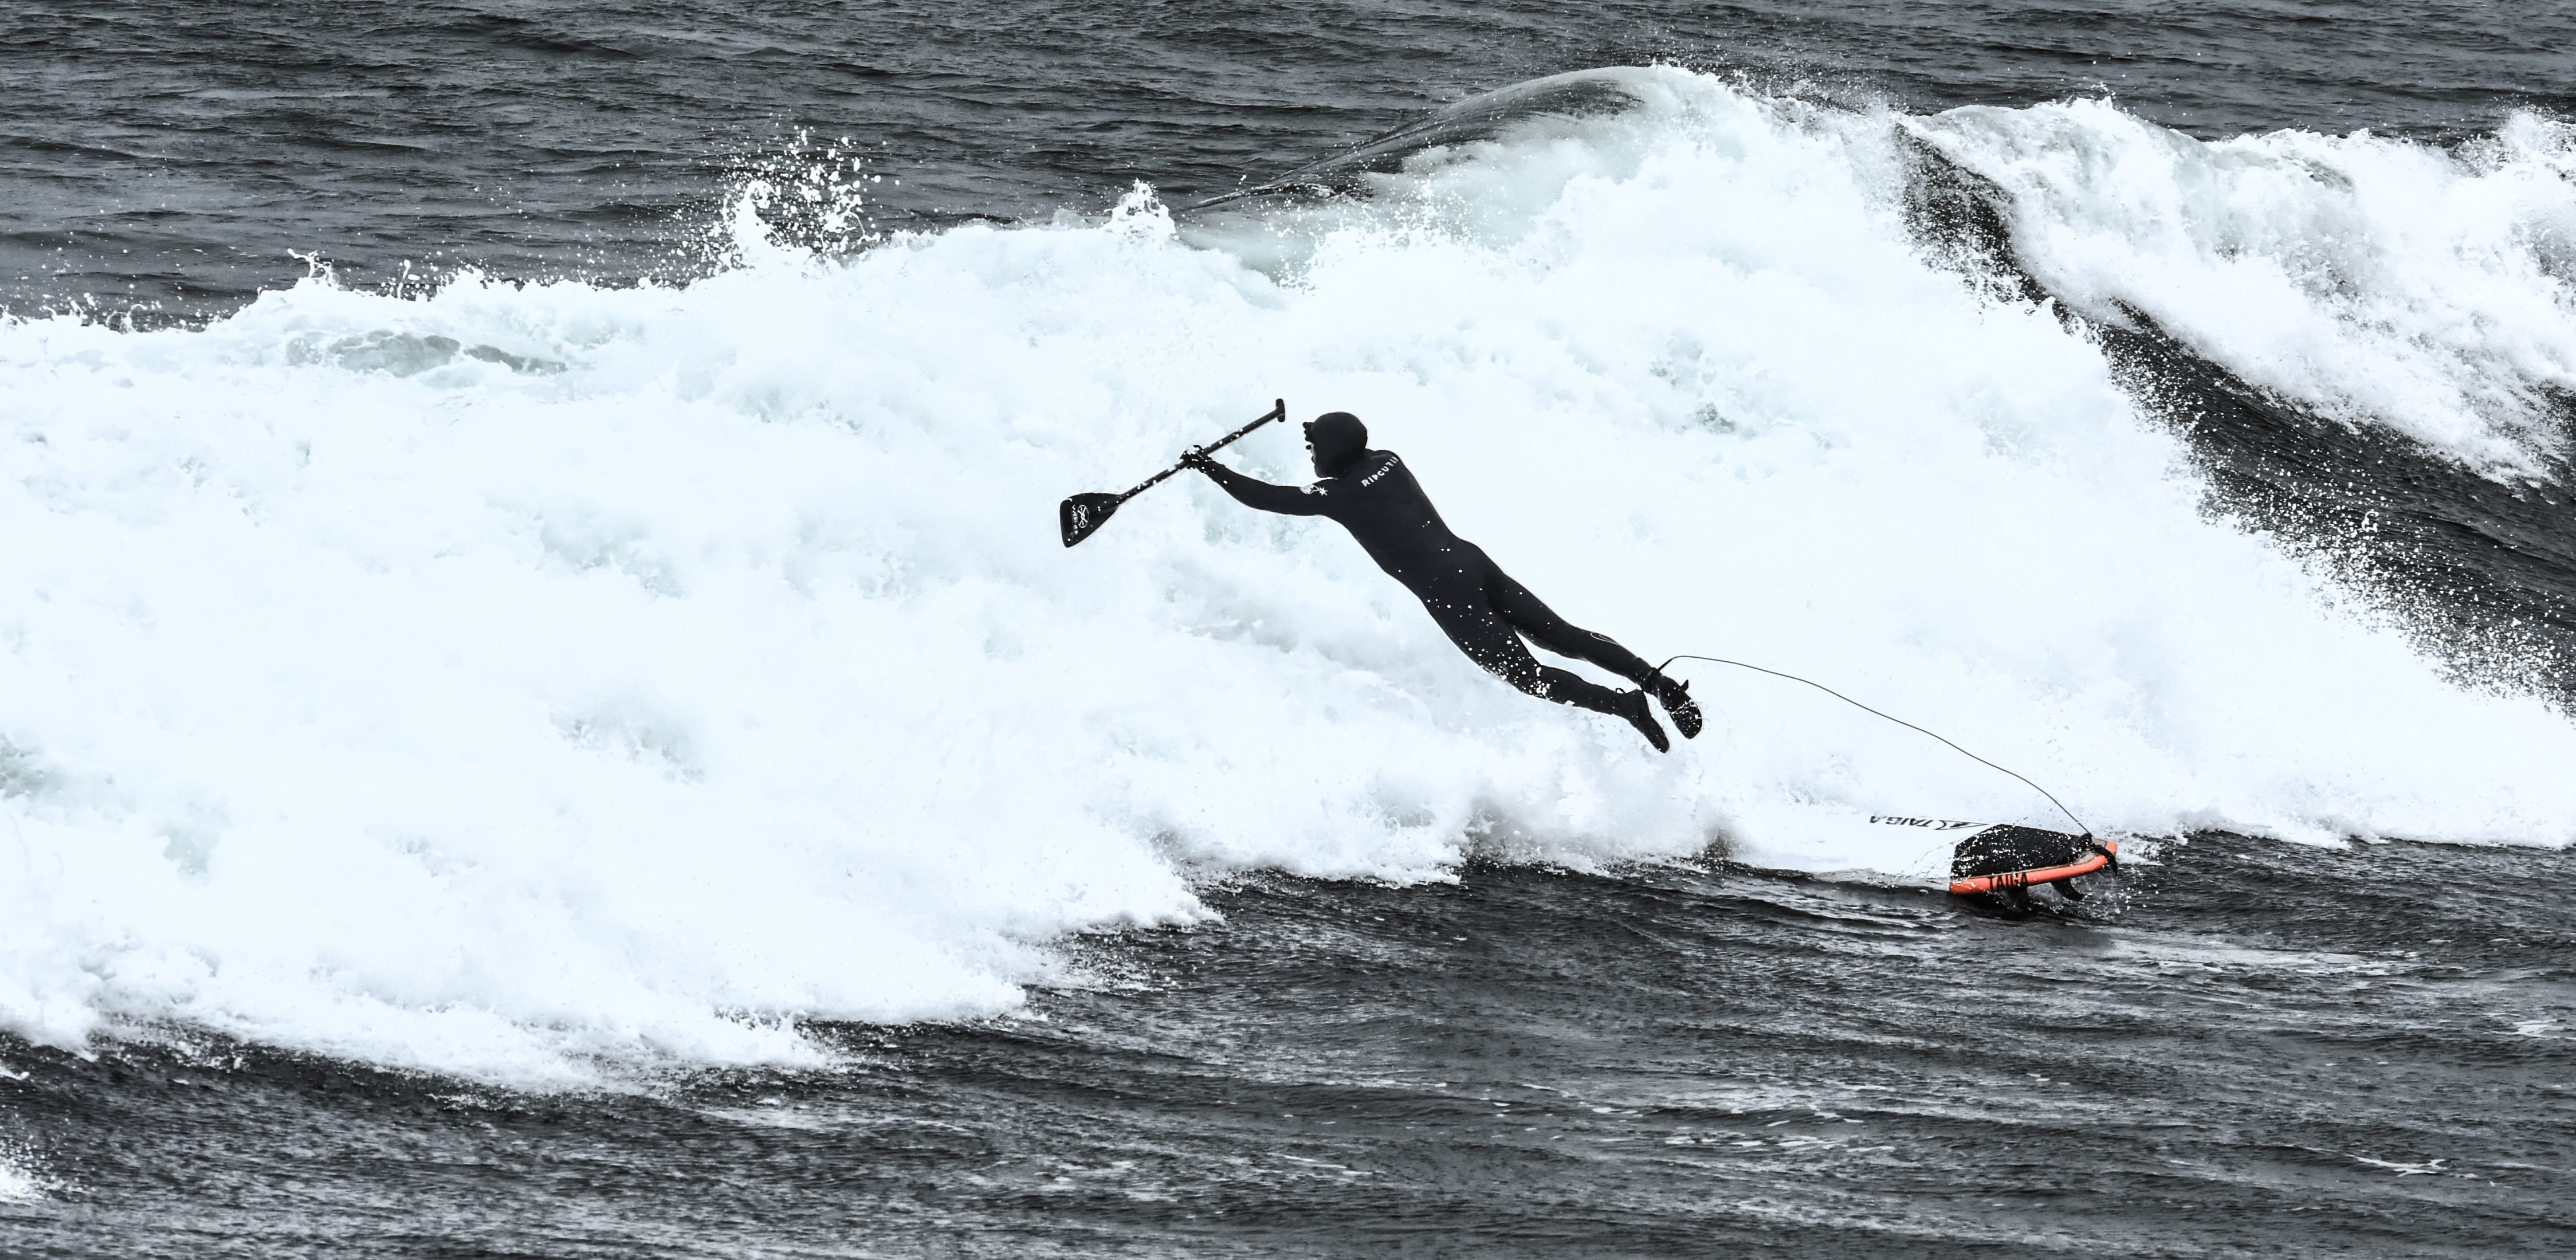 A man in a wetsuit, holding a paddle, jumping or falling off a paddleboard as a wave hits, at Wells